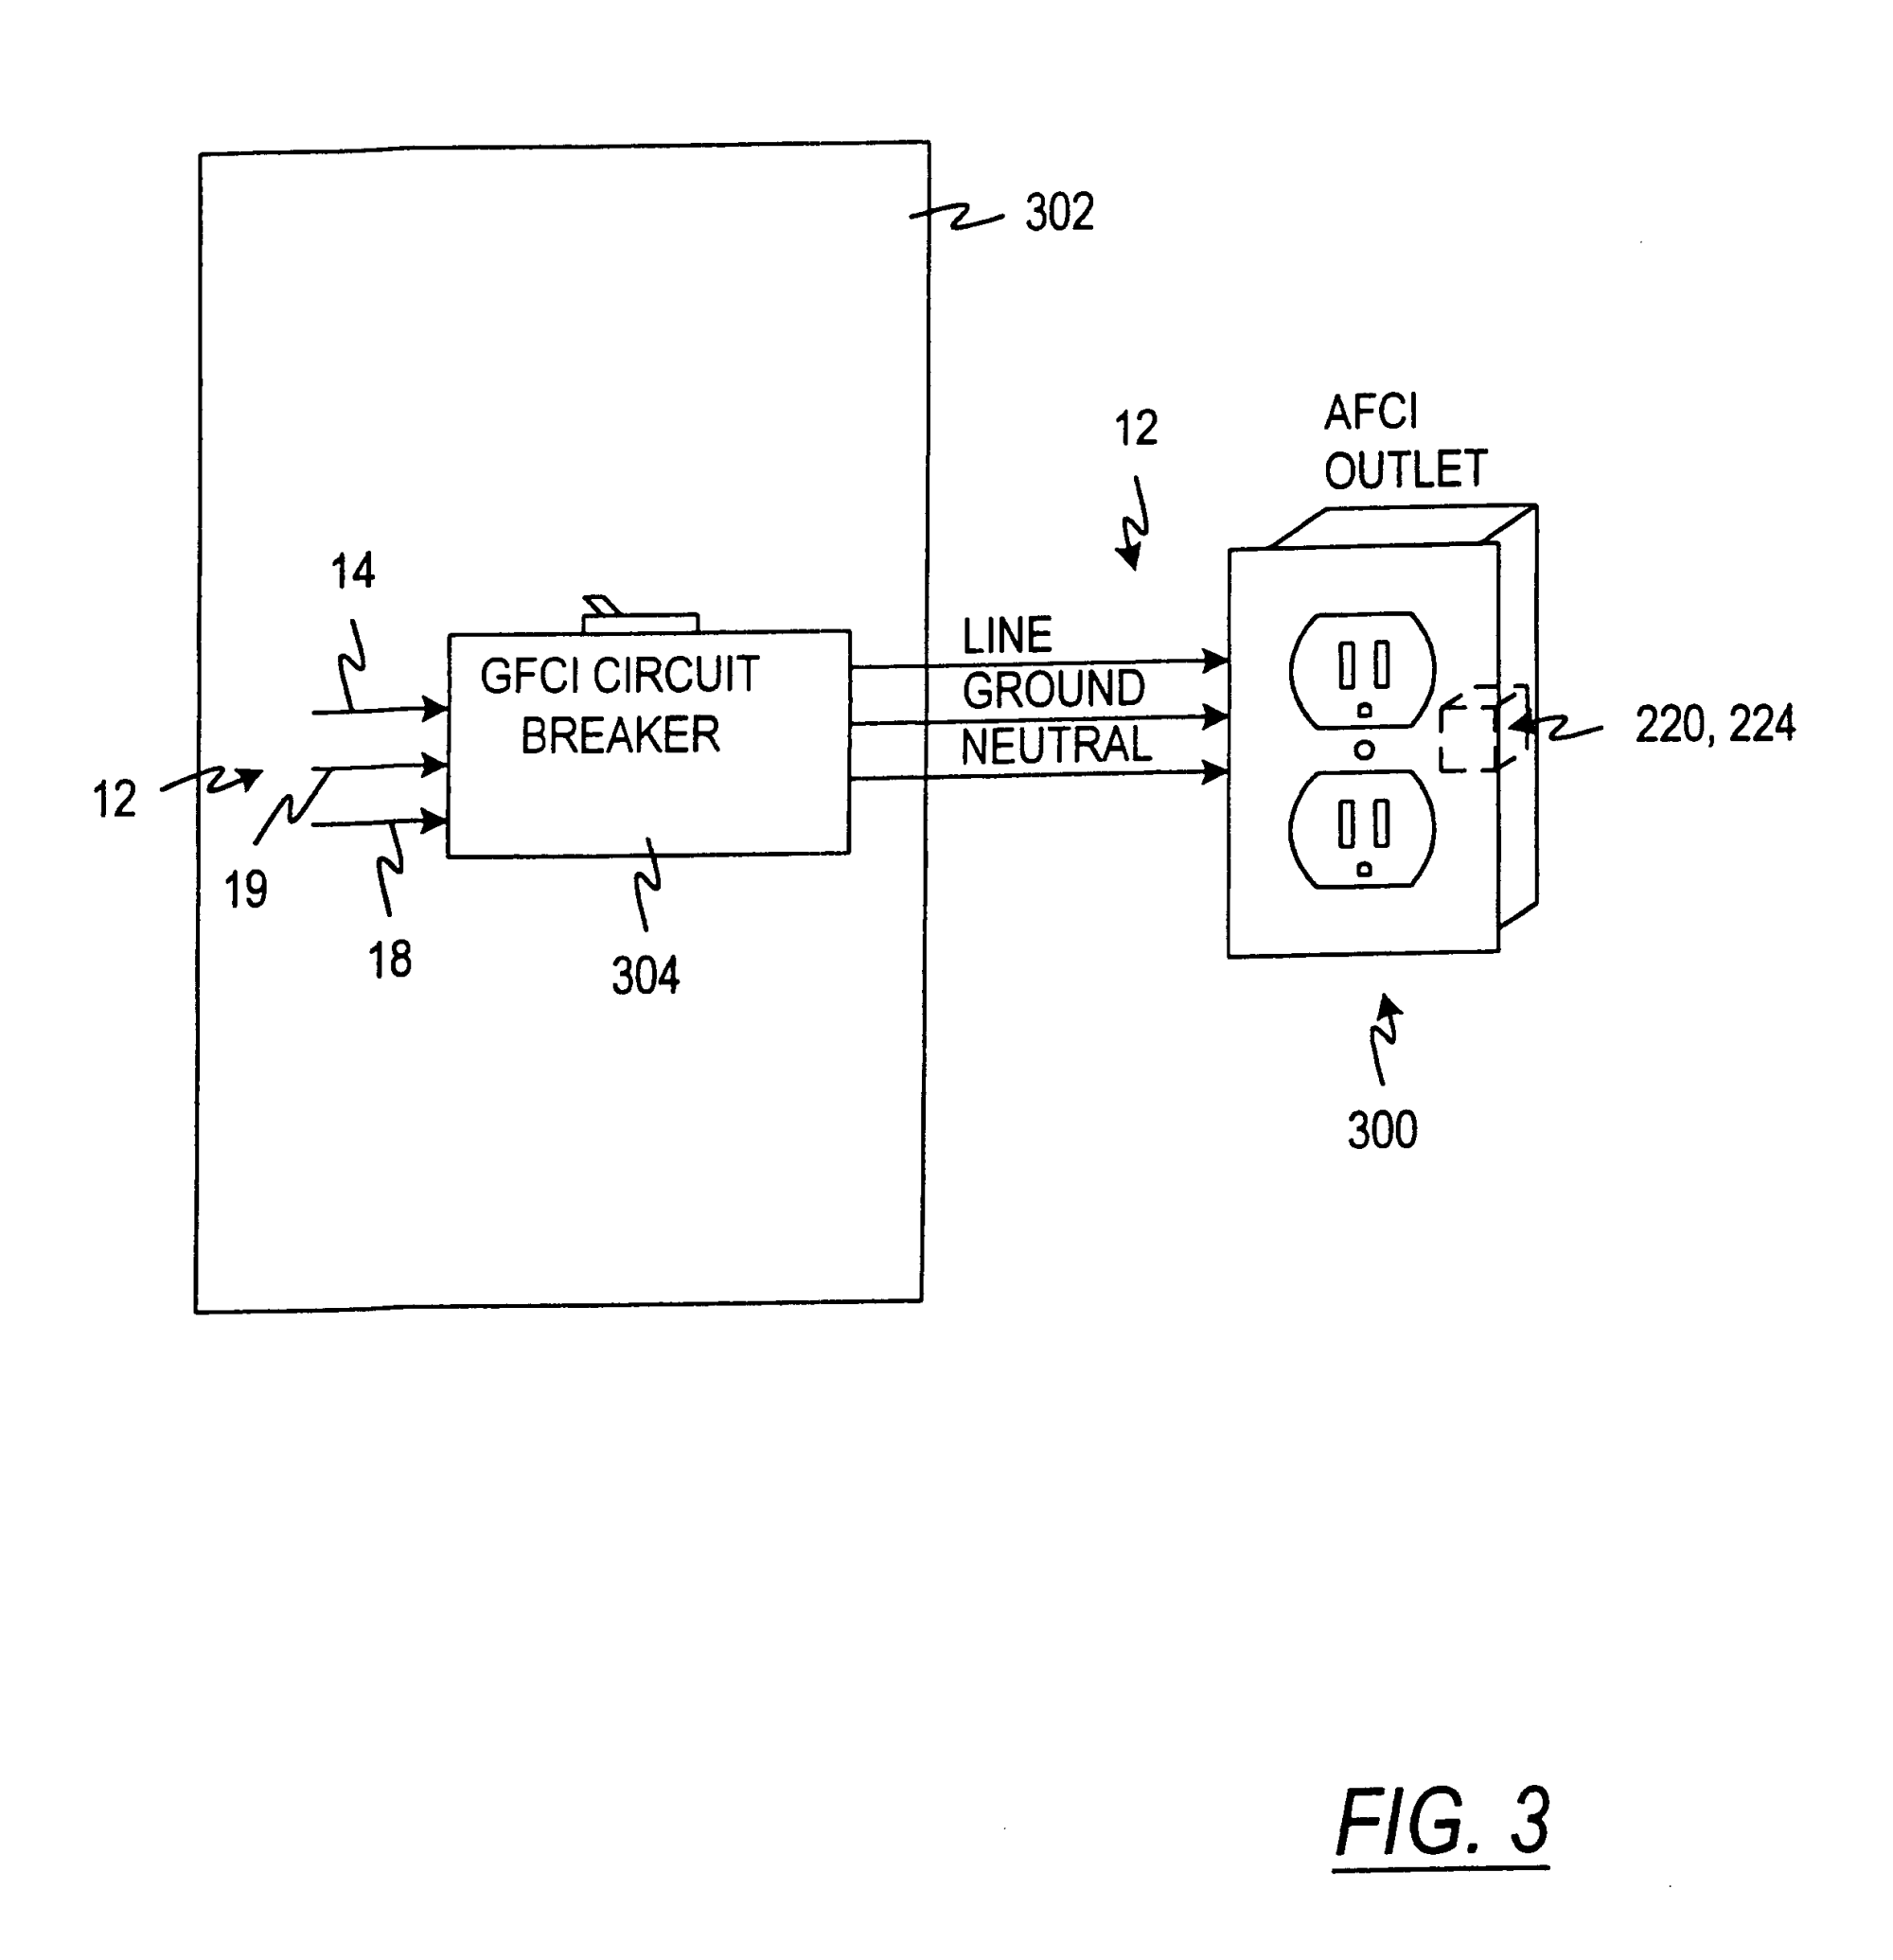 hight resolution of circuit interrupter device google patents on wiring a leviton gfci gfci receptacle google patents on wiring 2 gfci outlets in series